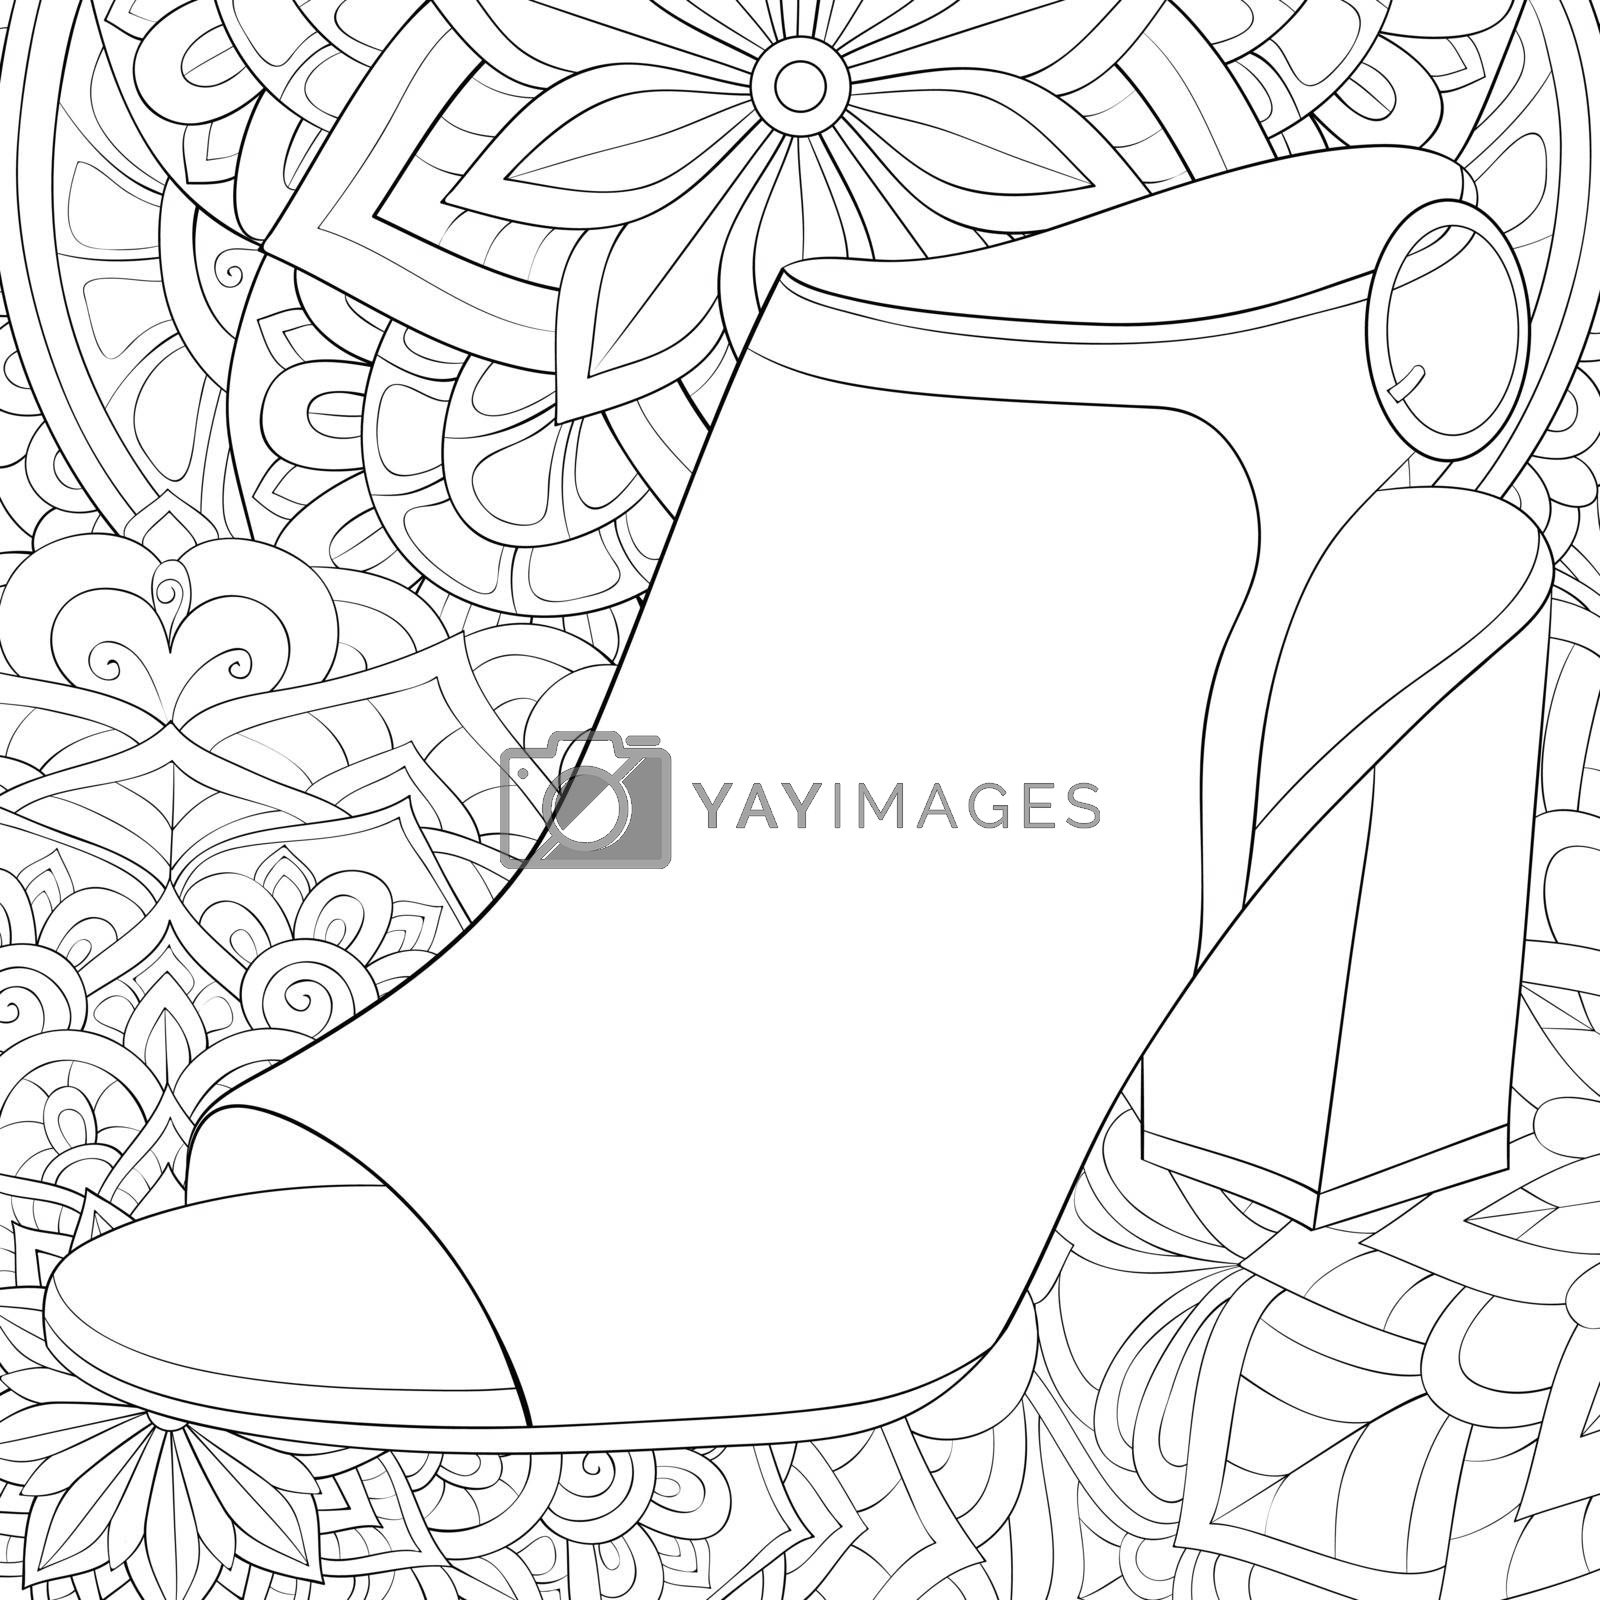 A cute shoe on the abstract background with ornaments image for relaxing activity.Coloring book,page for adults.Zen art style illustration for print.Poster design.